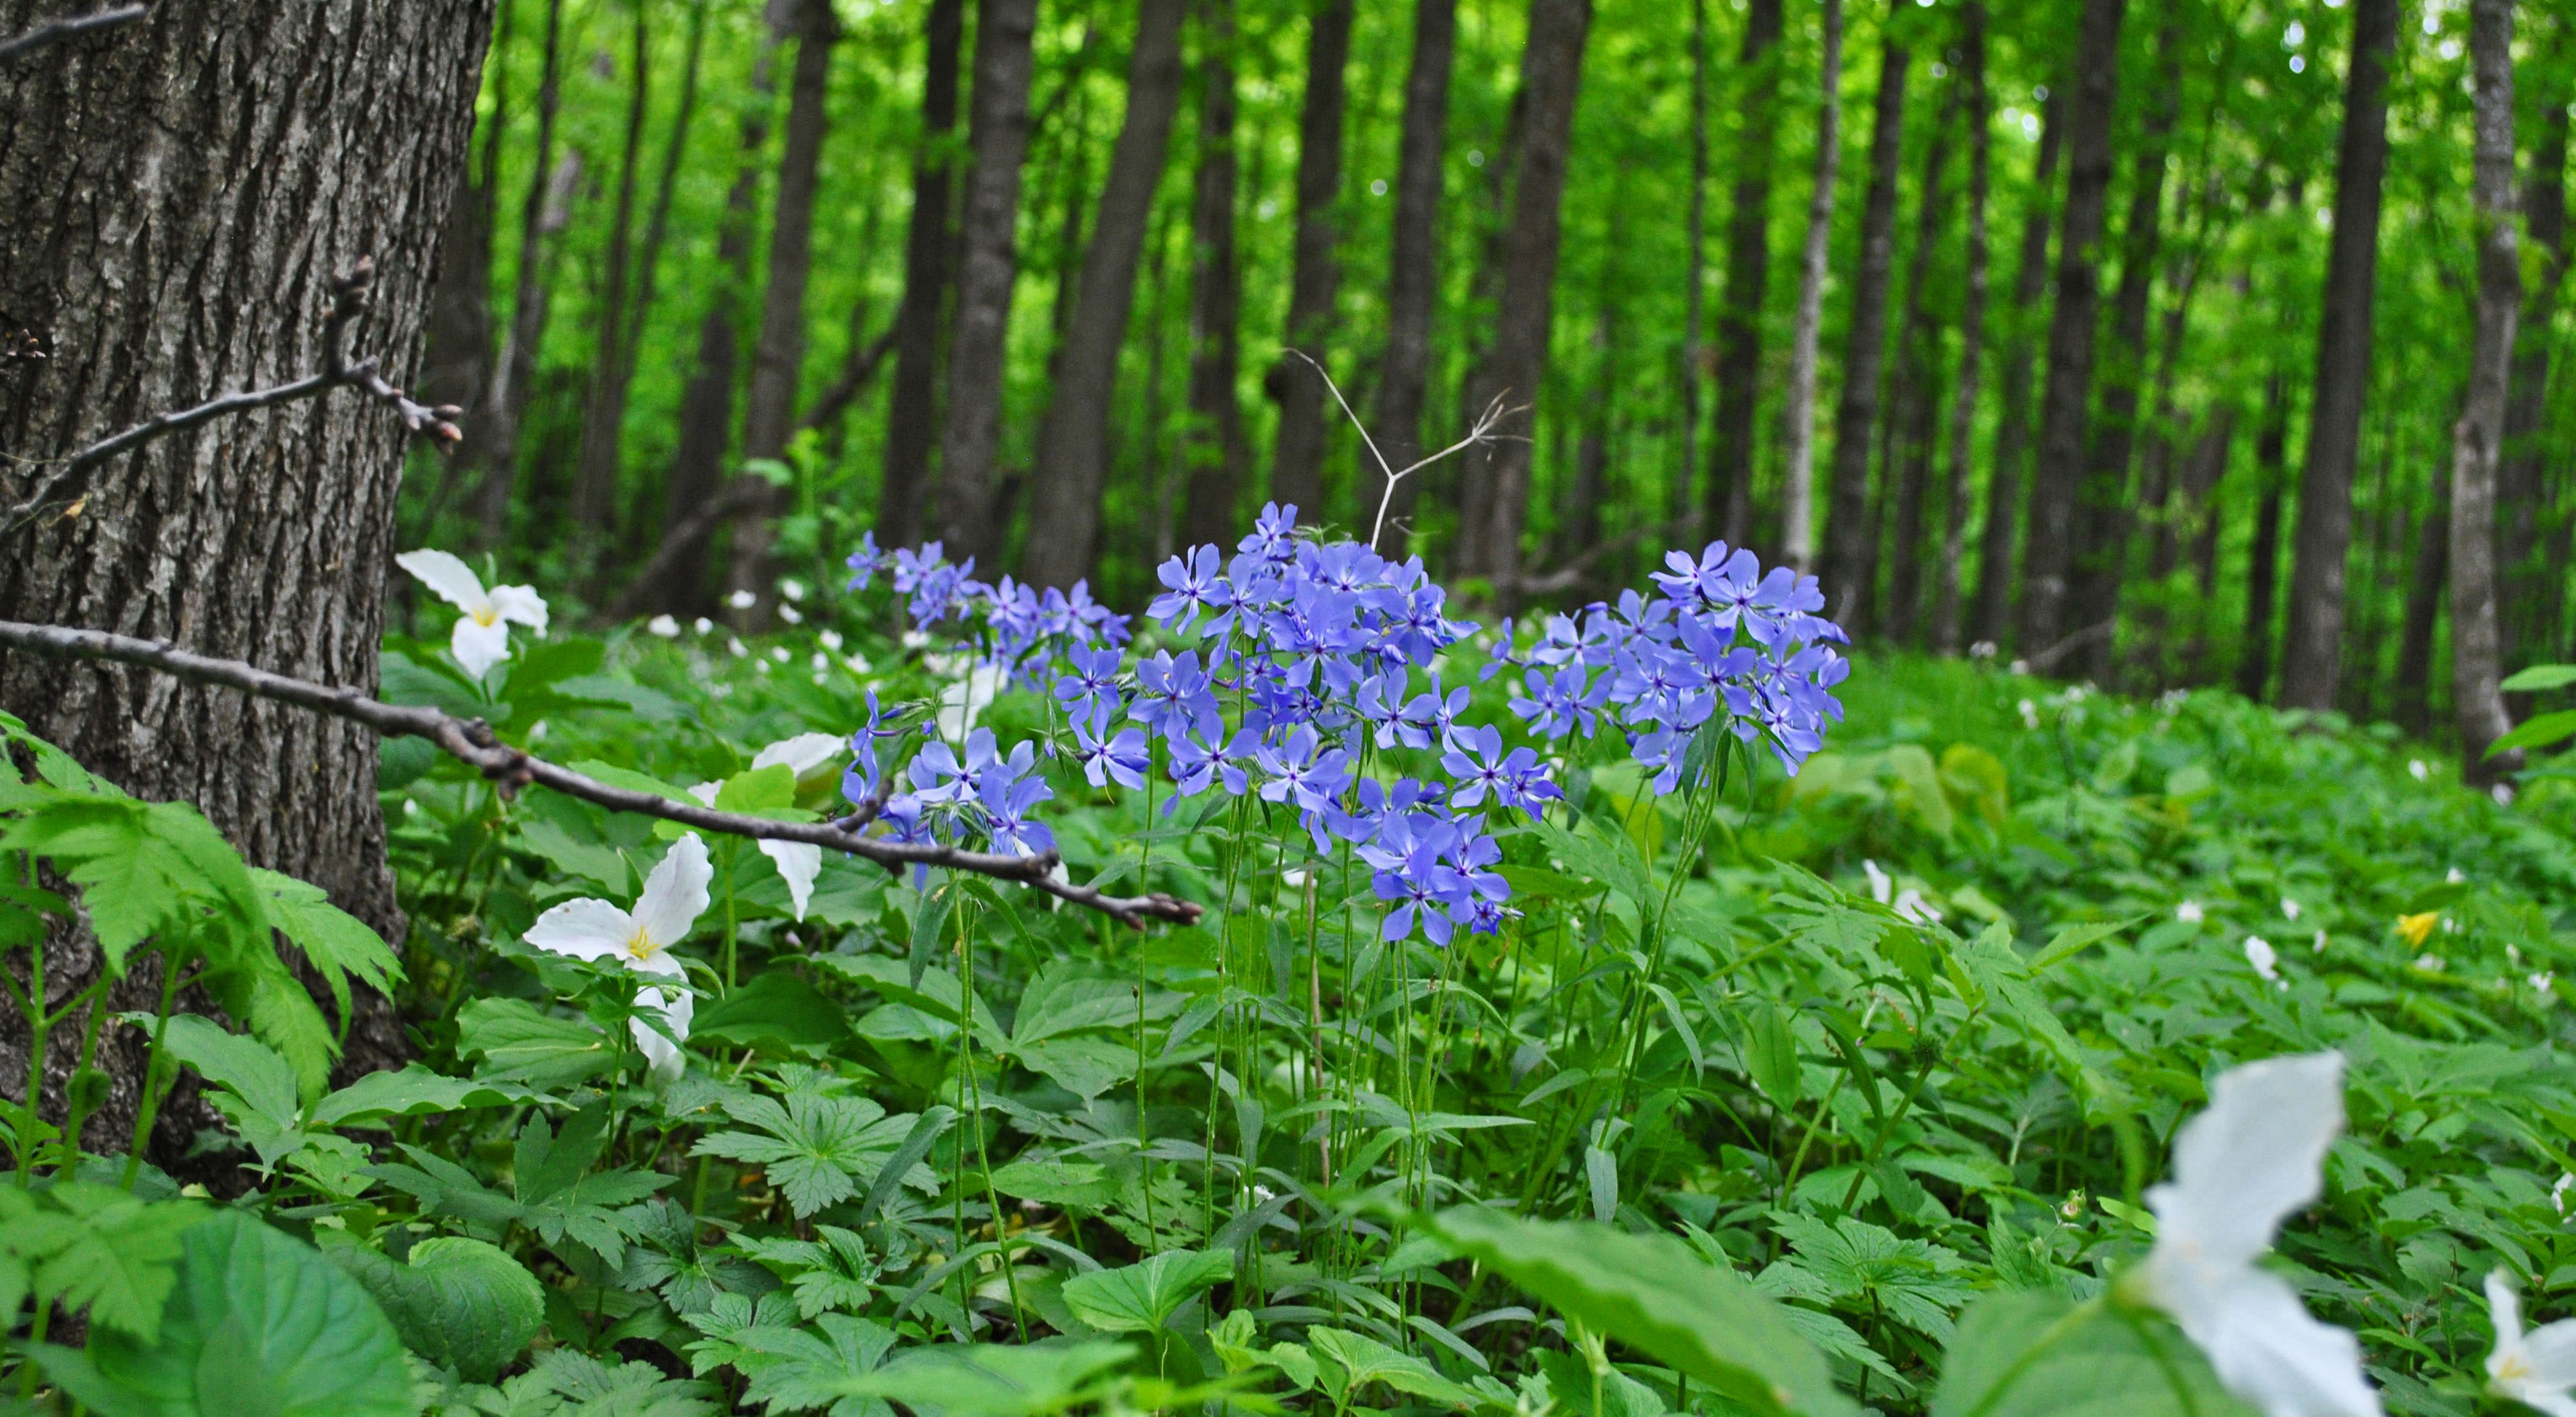 Blue and white flowers emerge from forest groundcover.